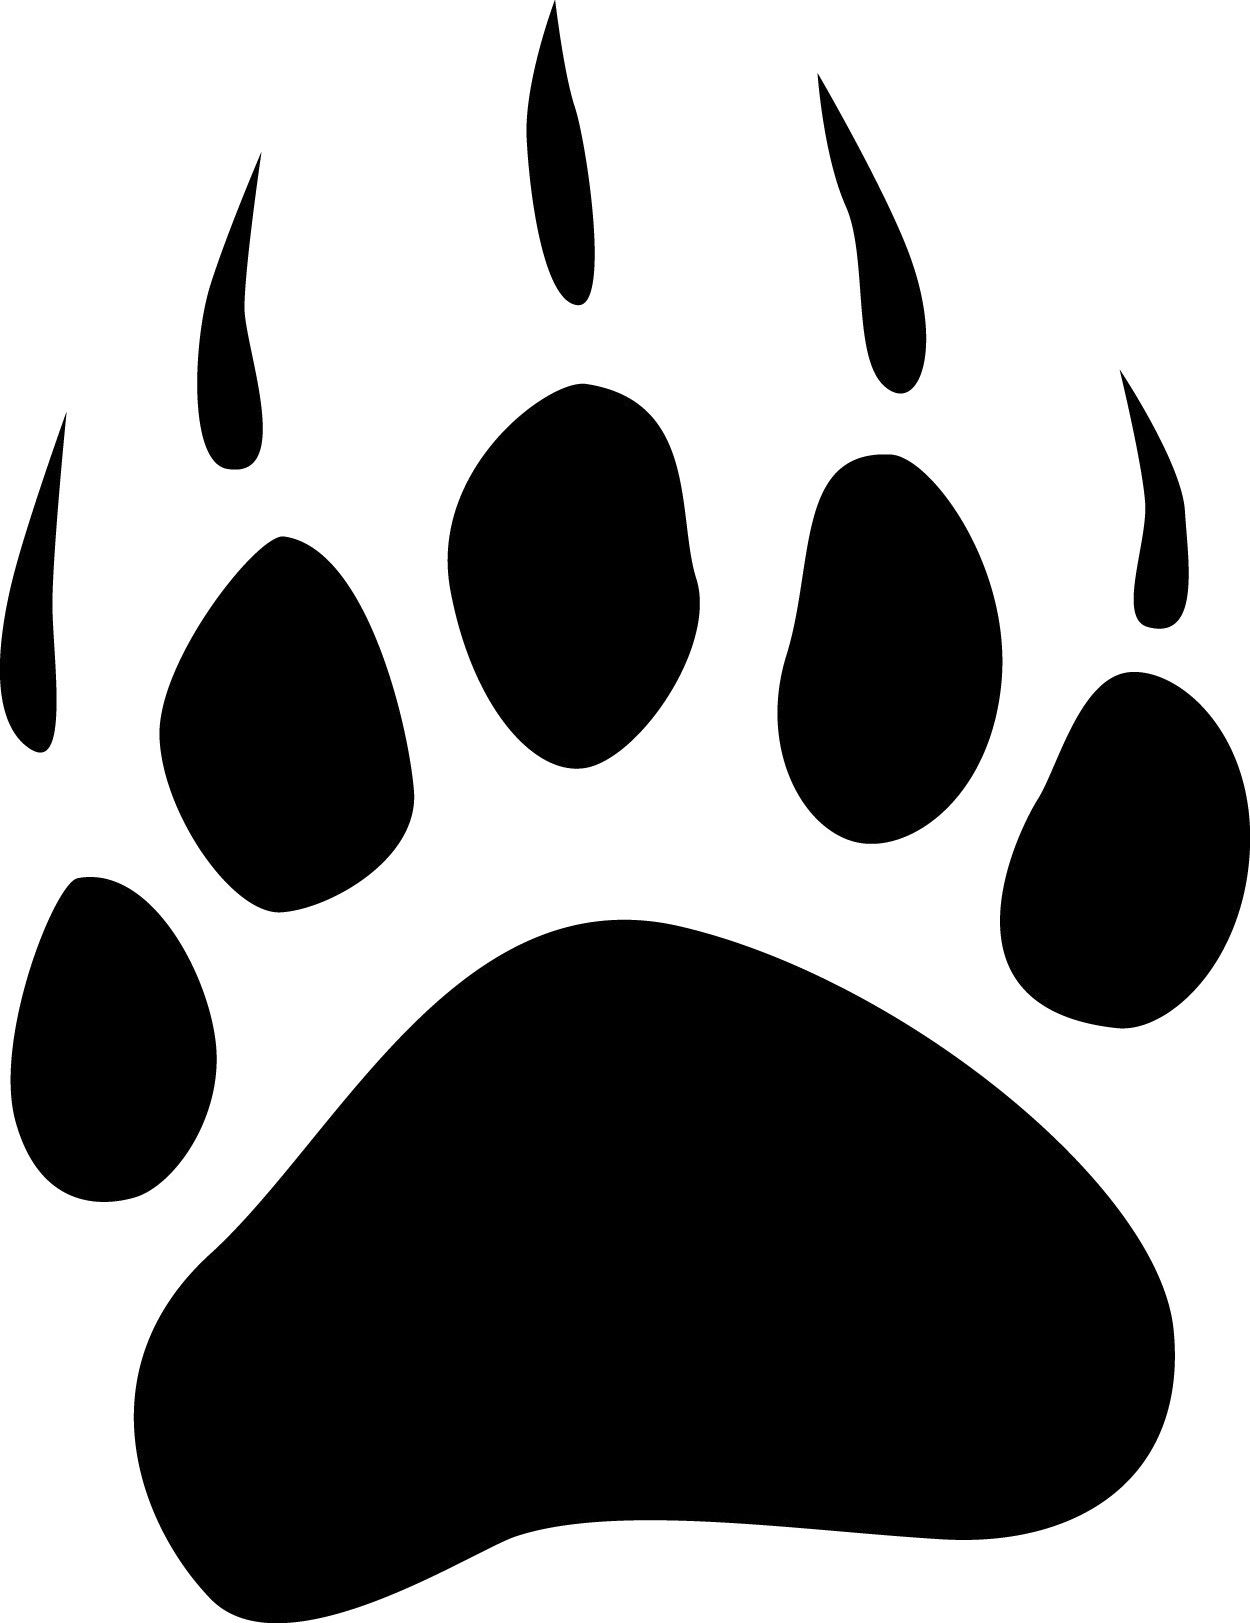 Grizzly clipart paw print. Bearcat clip art bear